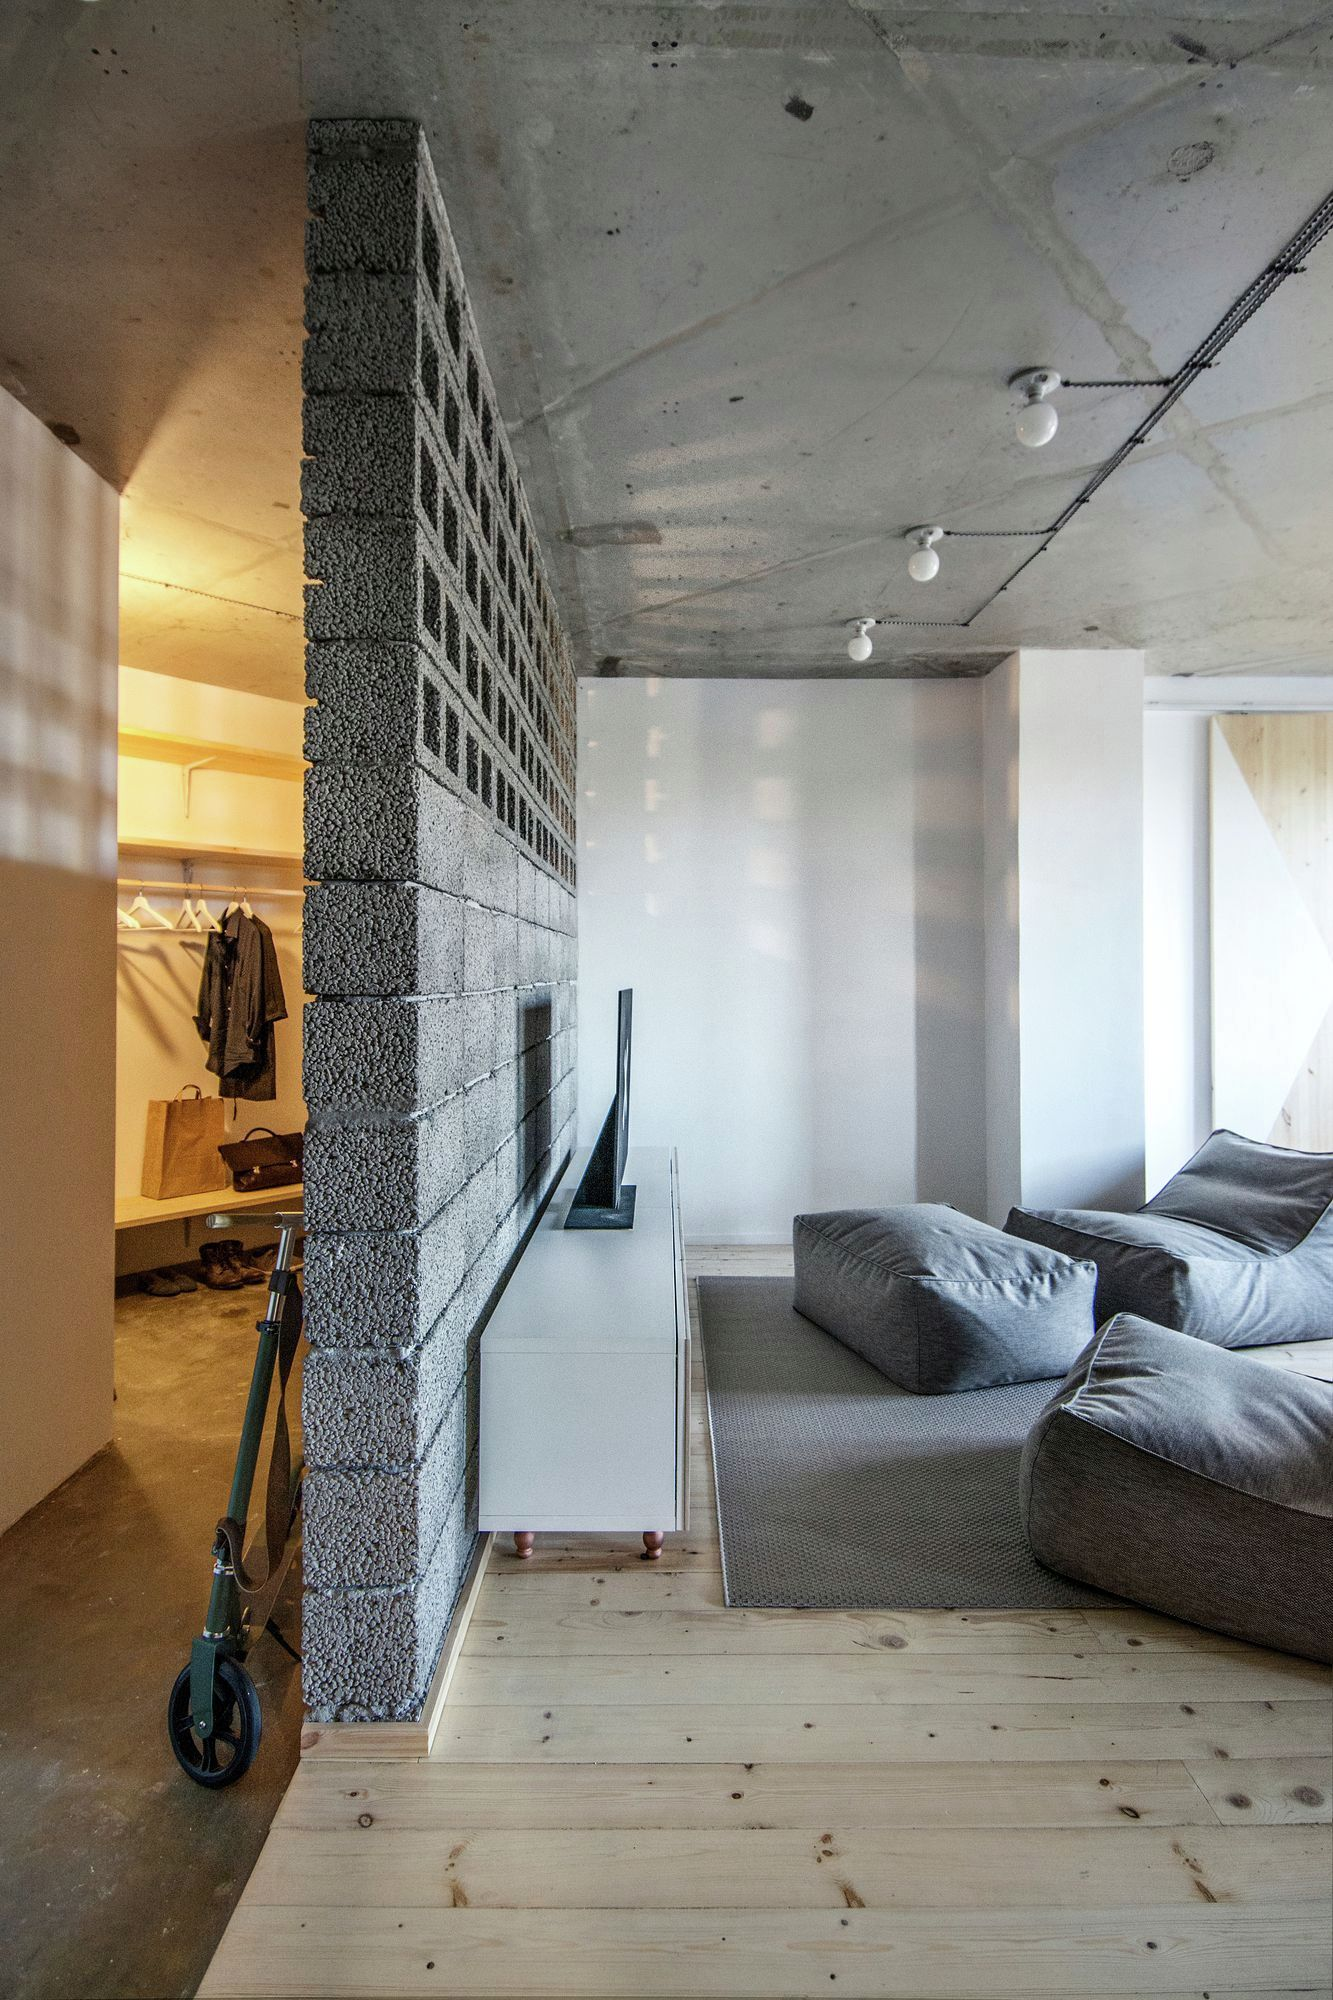 Eclectic apartment in St. Petersburg concrete wall divider and hallway